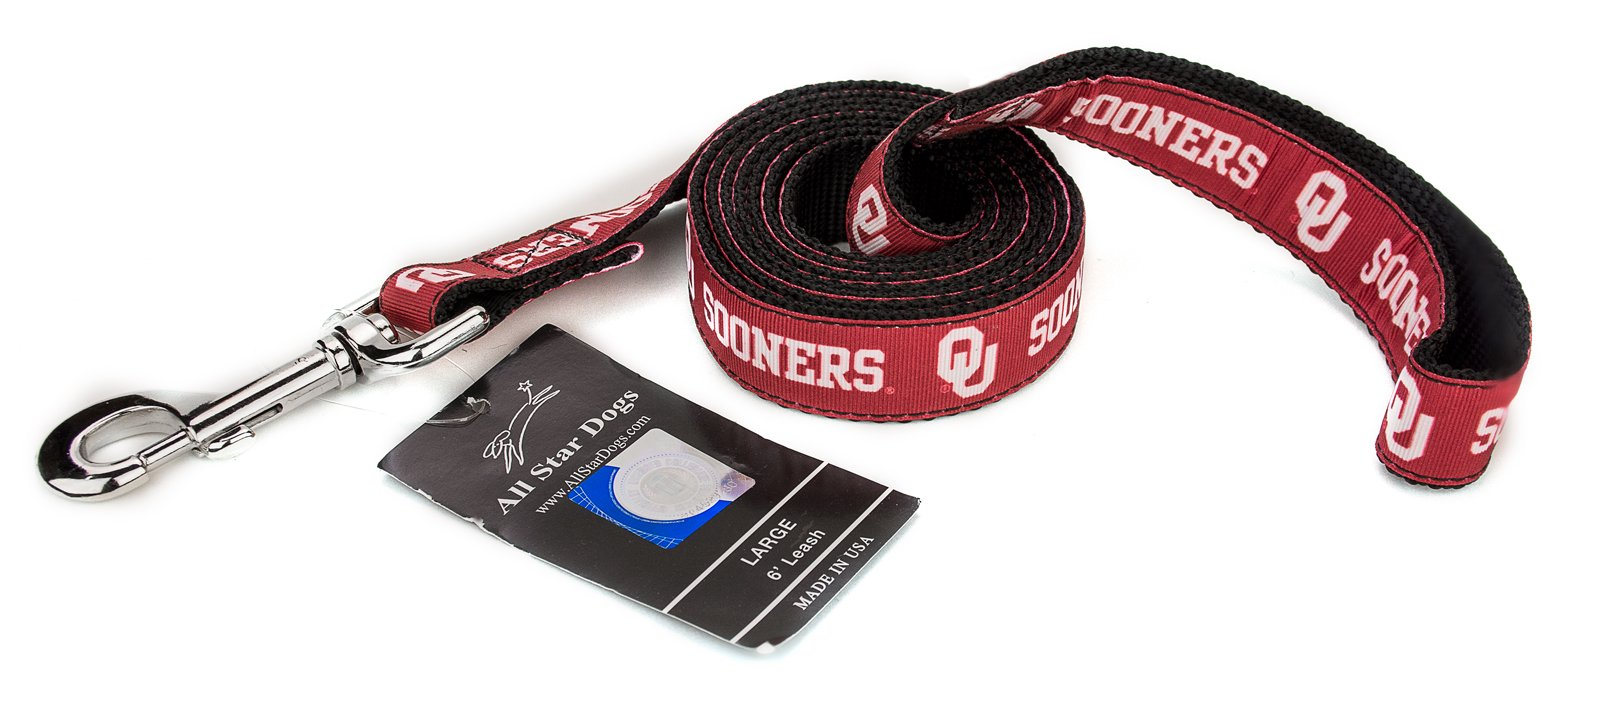 All Star Dogs 3/4 Inch Oklahoma Sooners Ribbon Dog Leash - 6 Foot by All Star Dogs